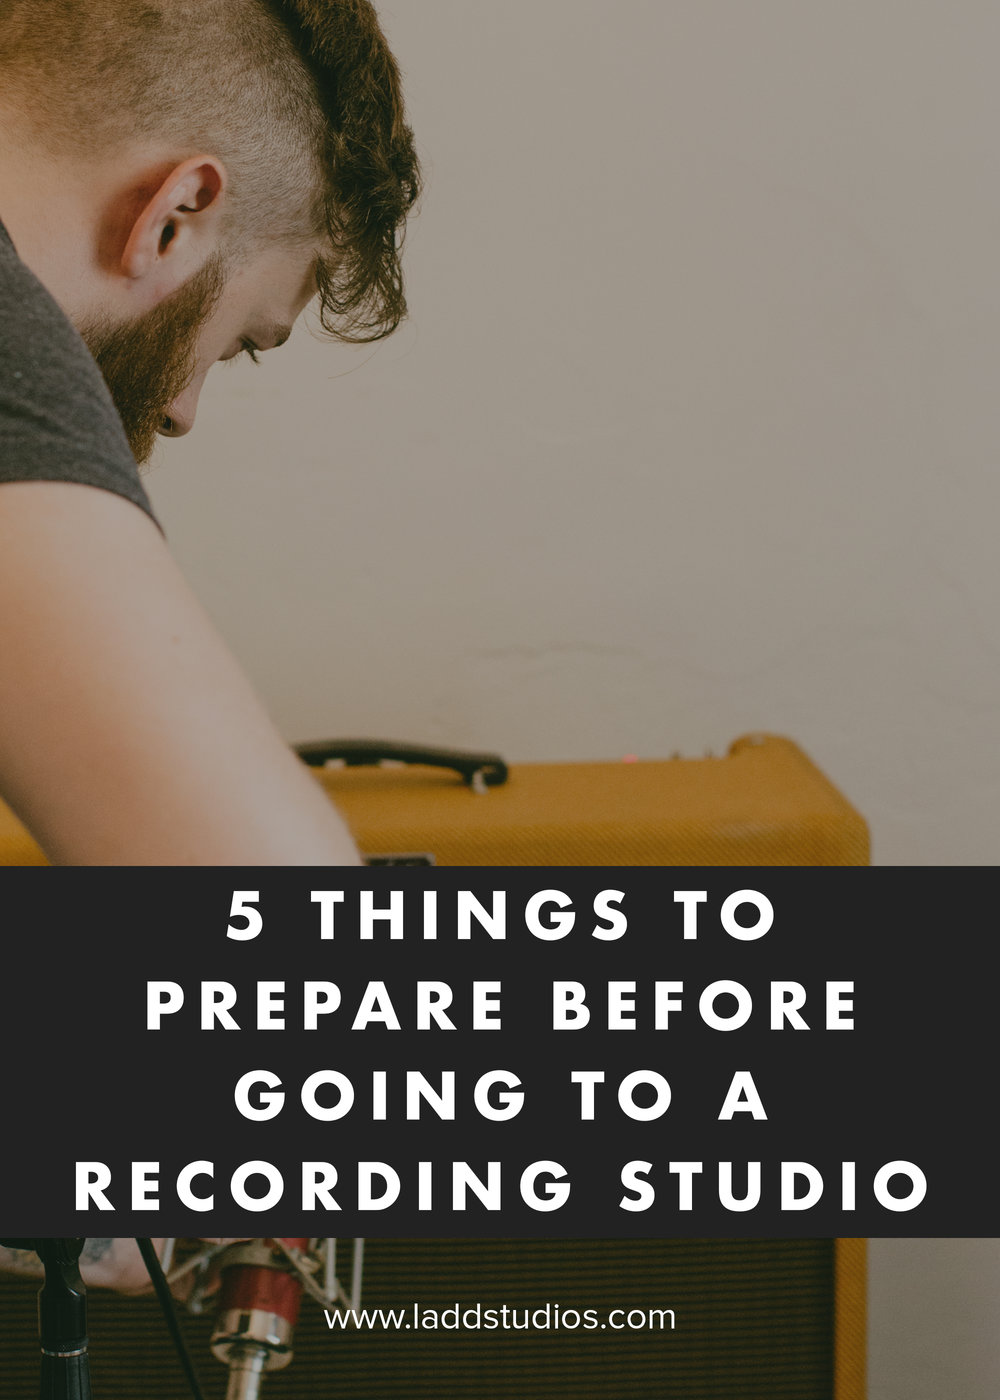 5-things-to-prepare-before-going-to-a-recording-studio.jpg